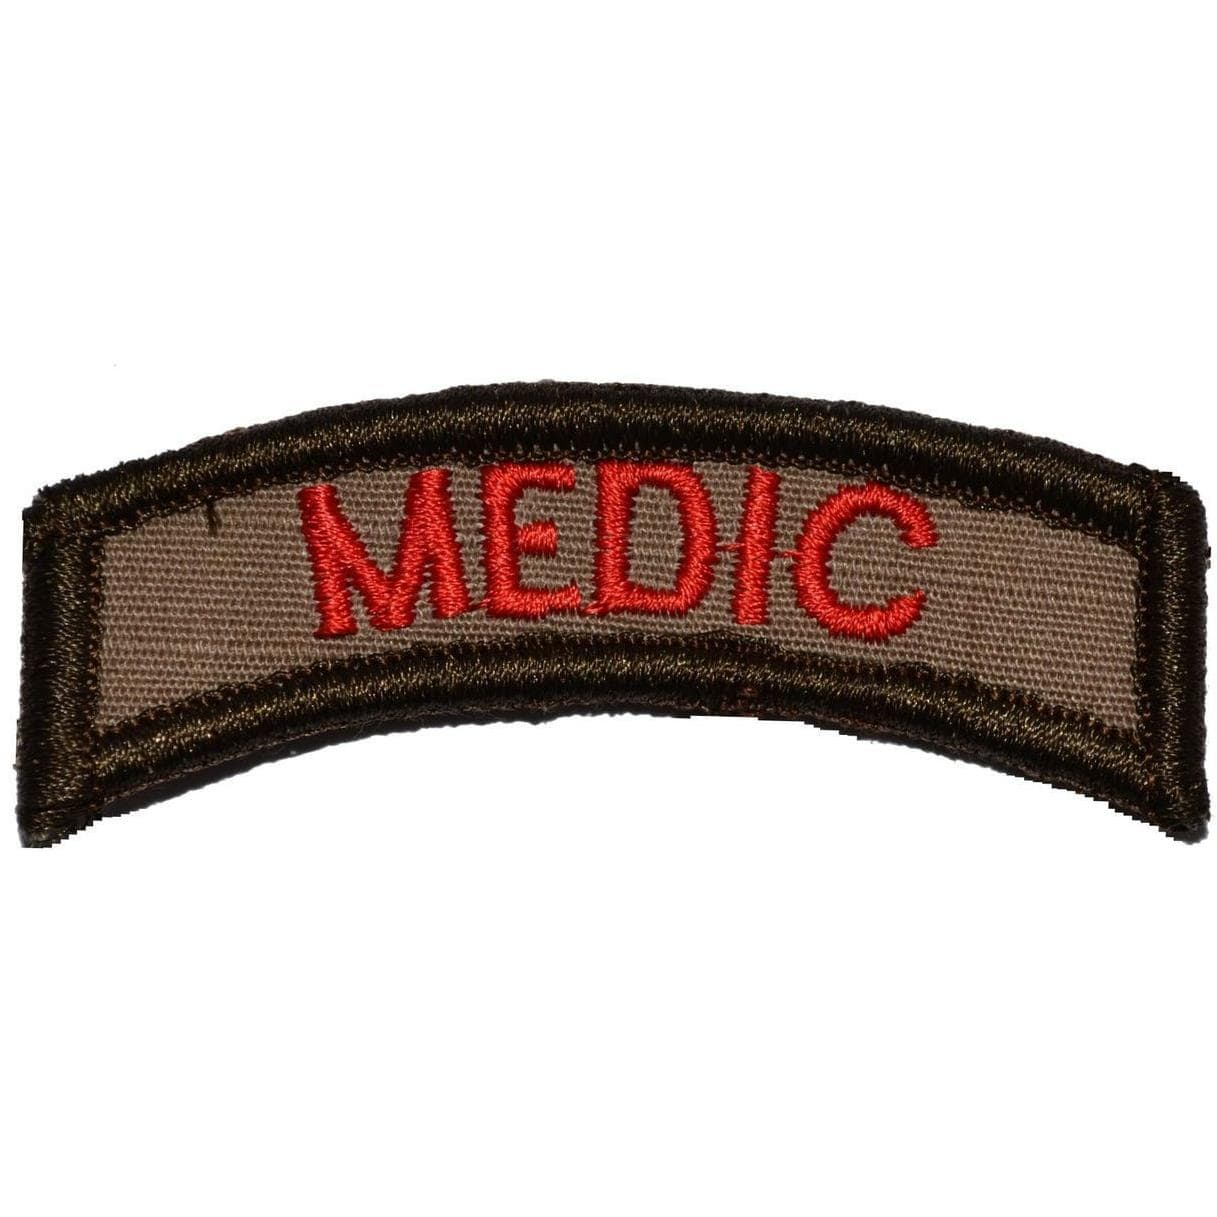 Tactical Gear Junkie Patches Coyote Brown Medic Tab Patch